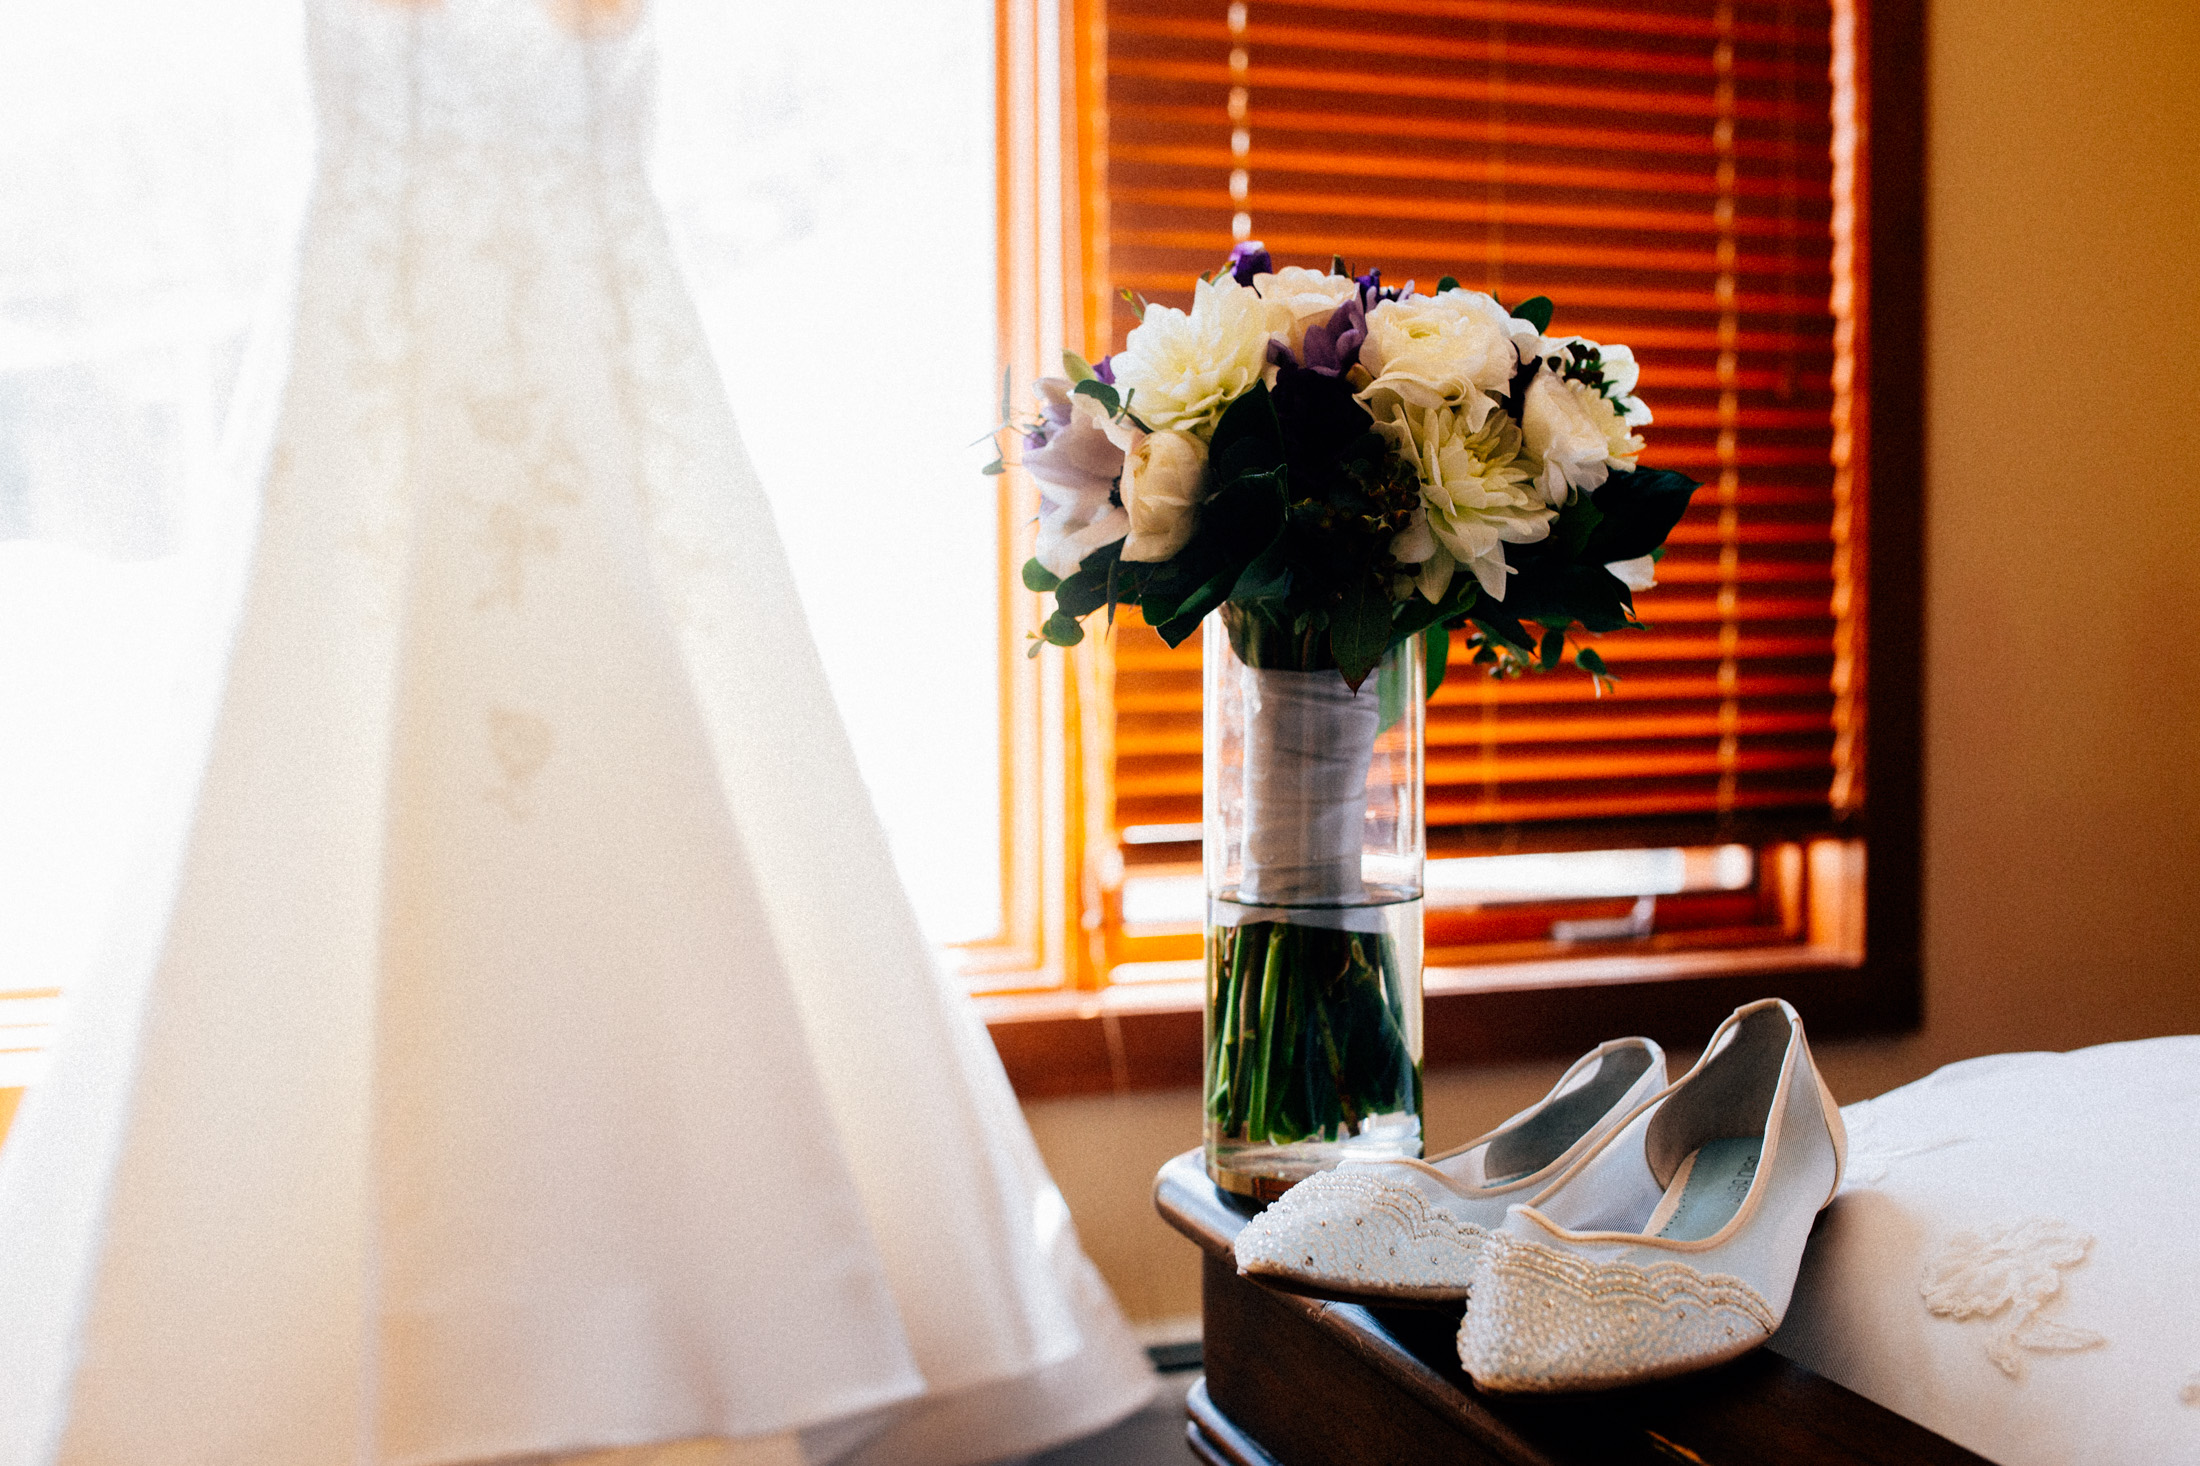 Wedding shoes with flowers and dress.